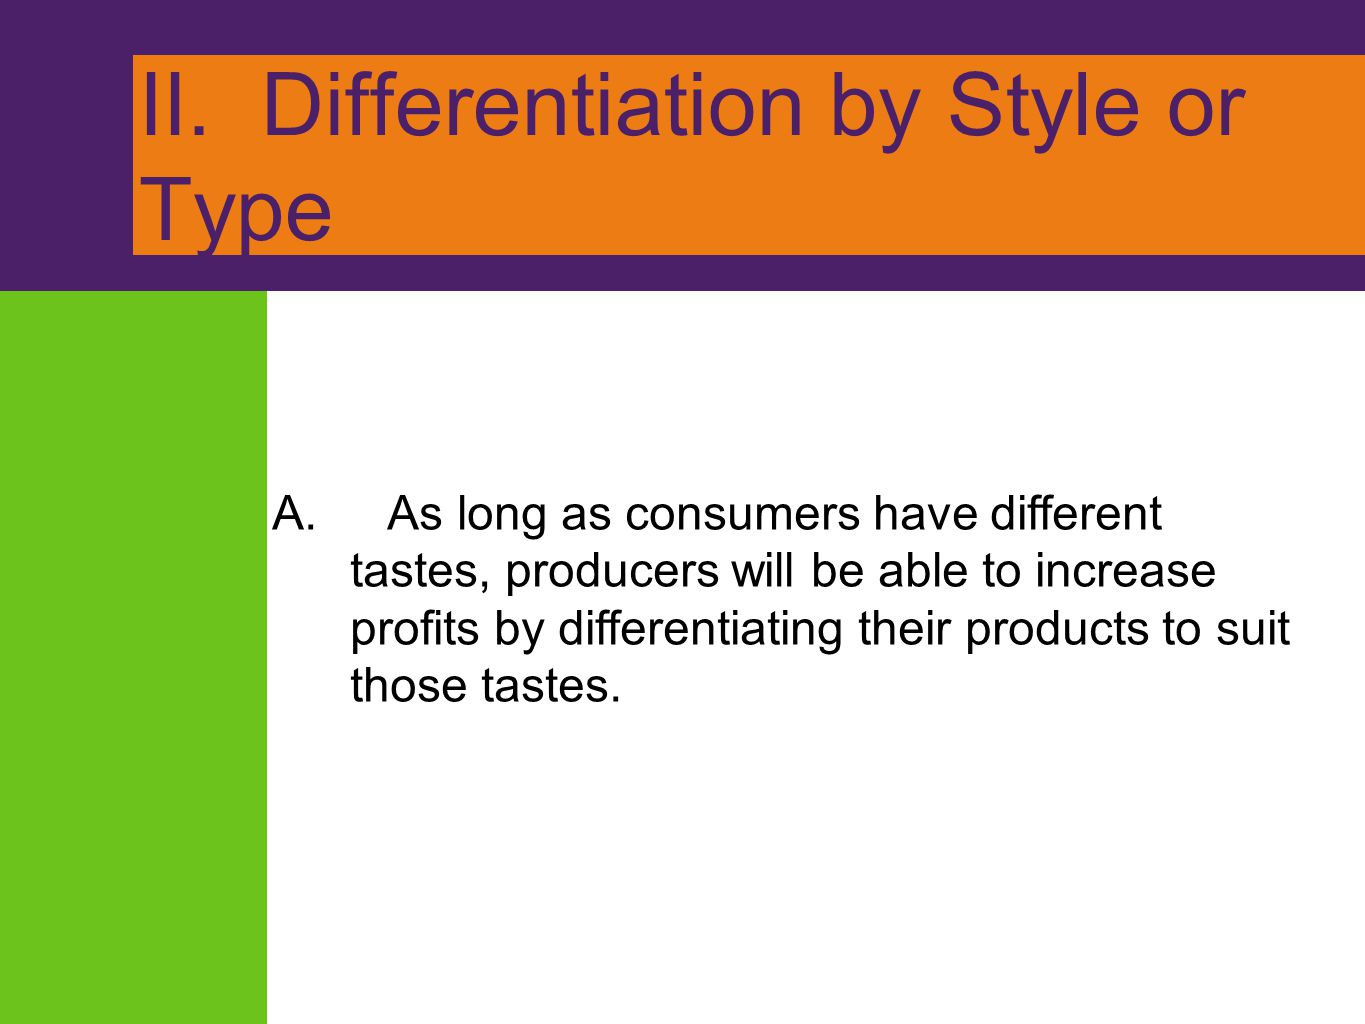 II. Differentiation by Style or Type